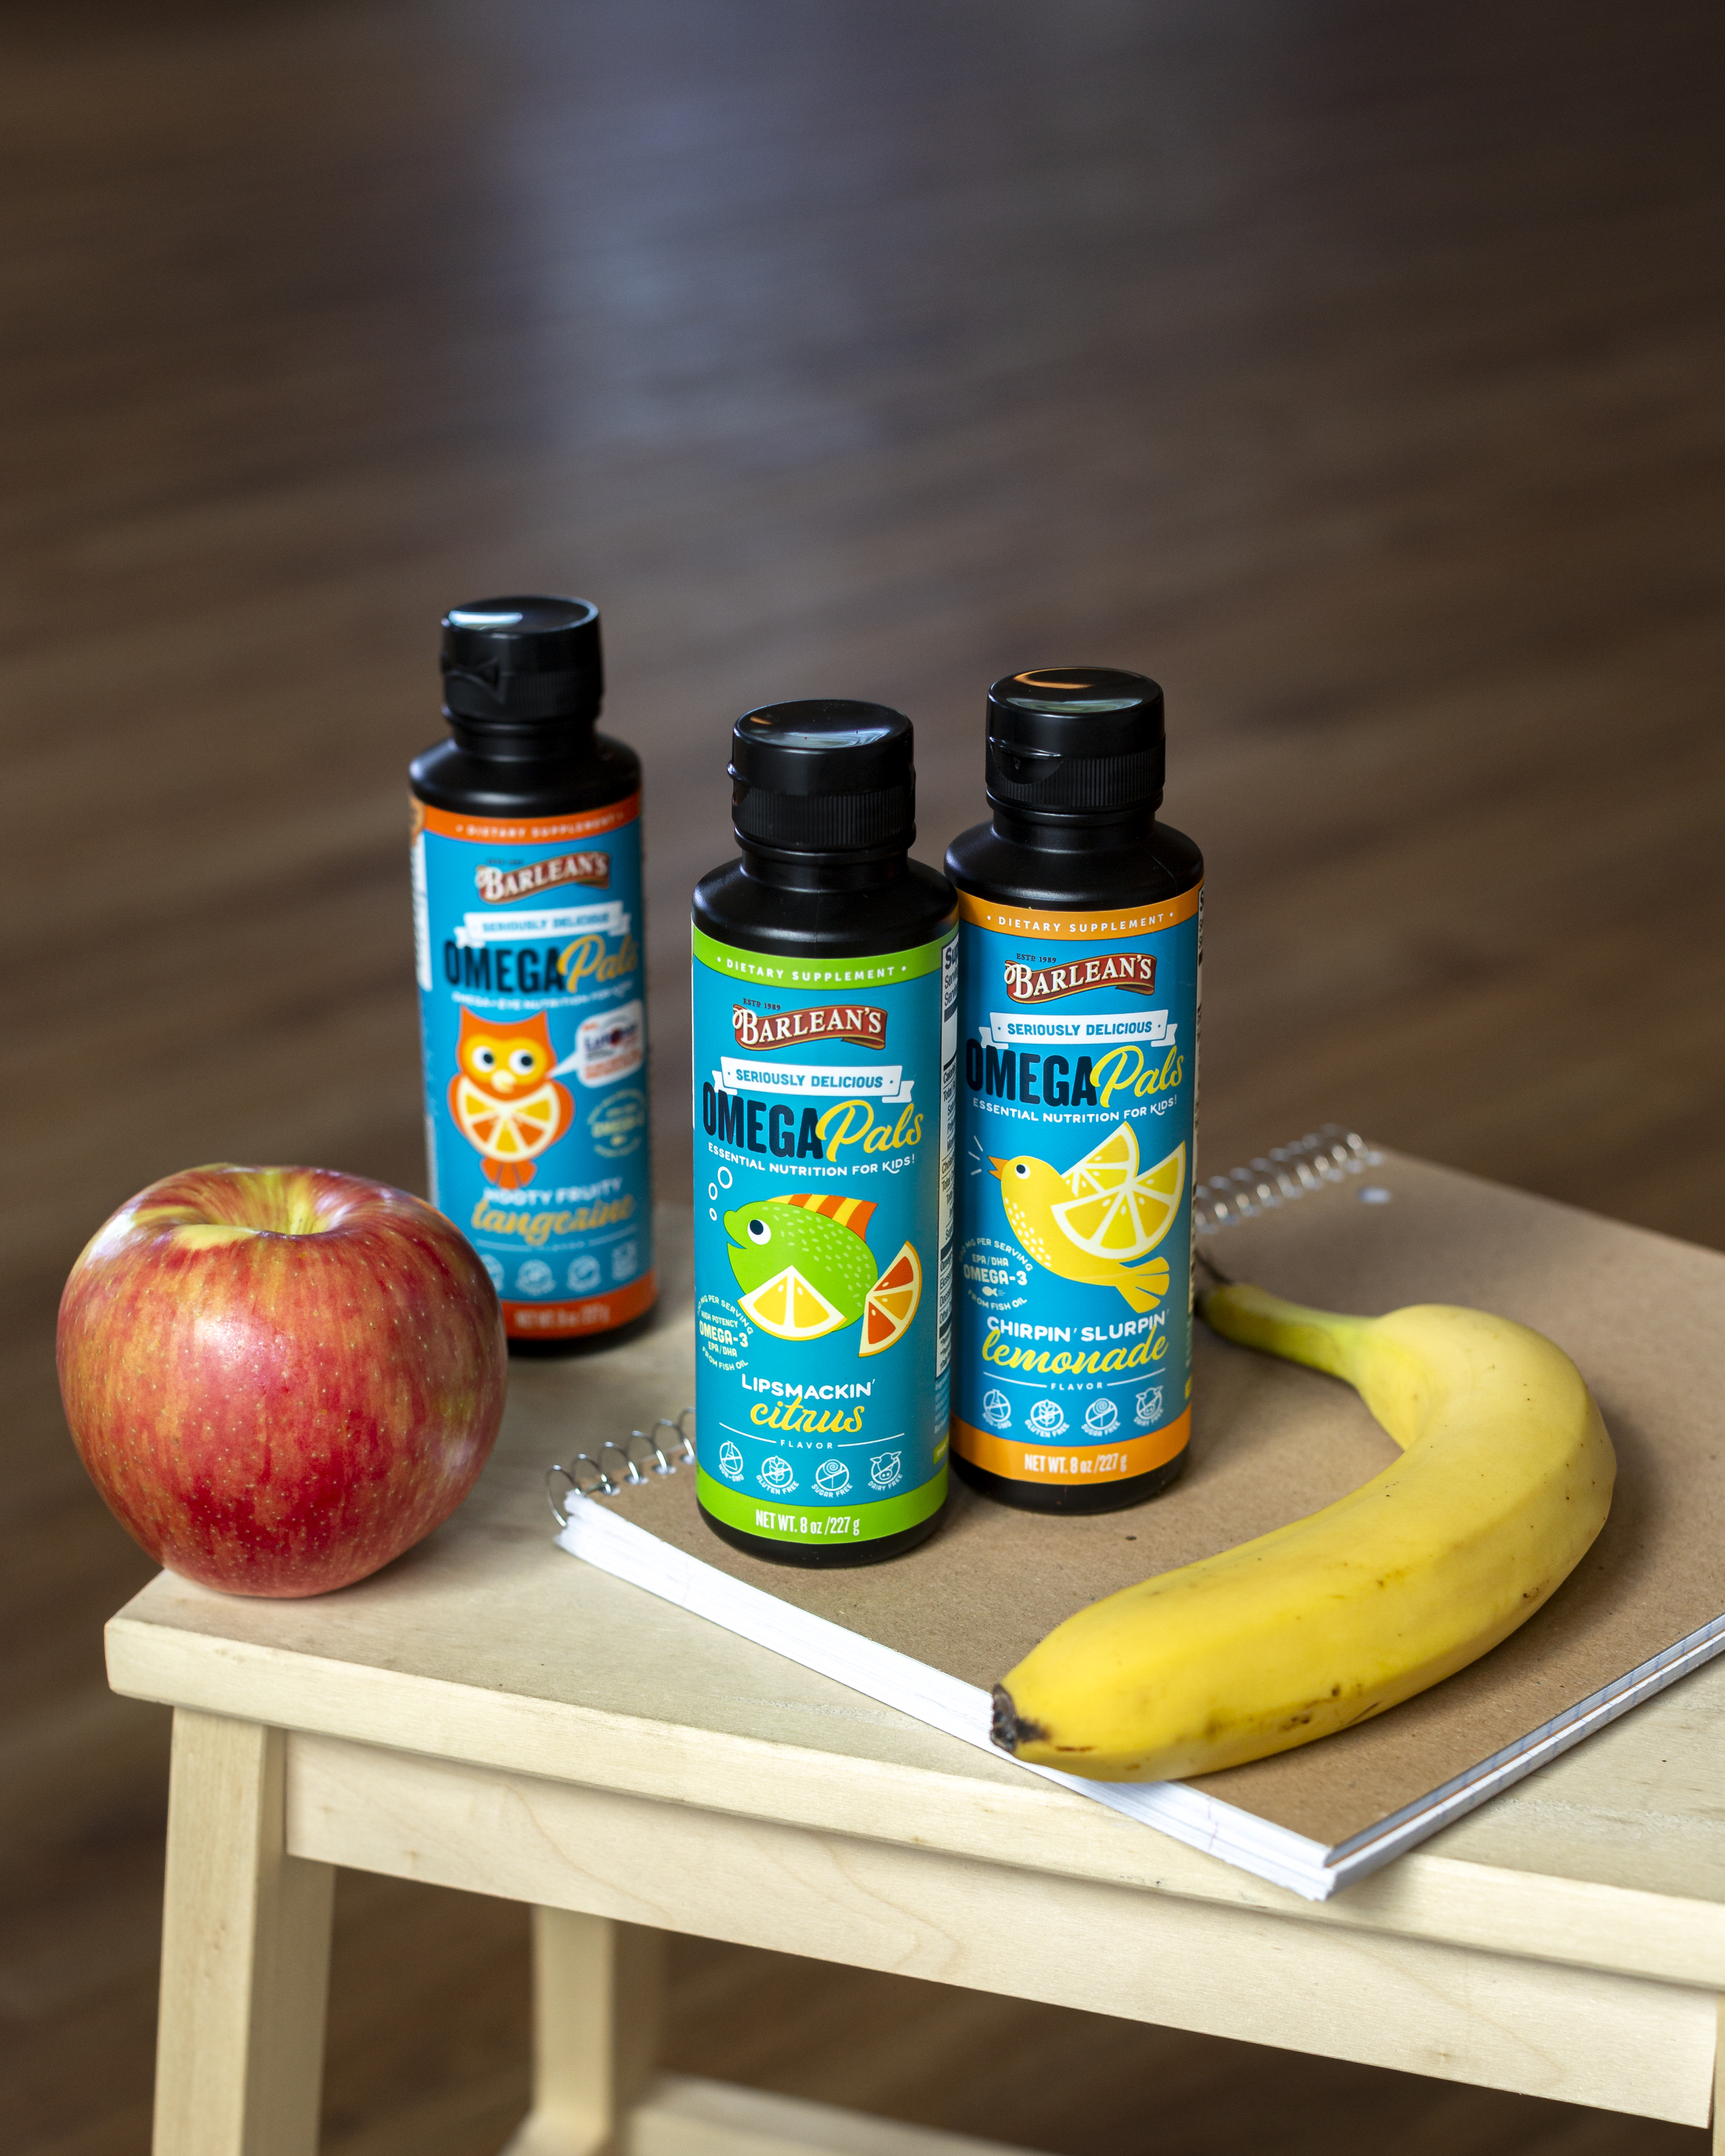 Three bottles of Seriously Delicious Omega Pals with on top of a notebook with an apple and banana next to them.